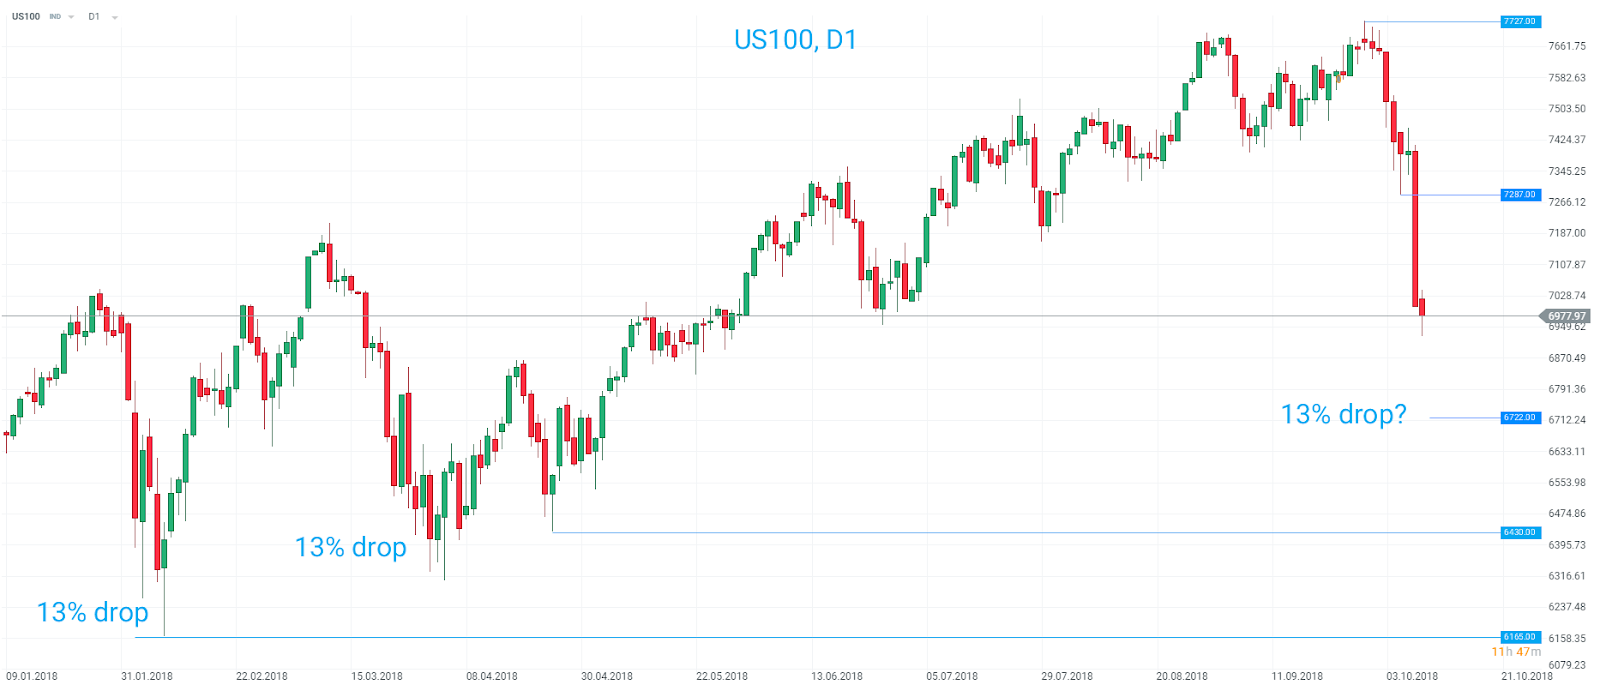 Indices Update: US Tech leads global stock swoon